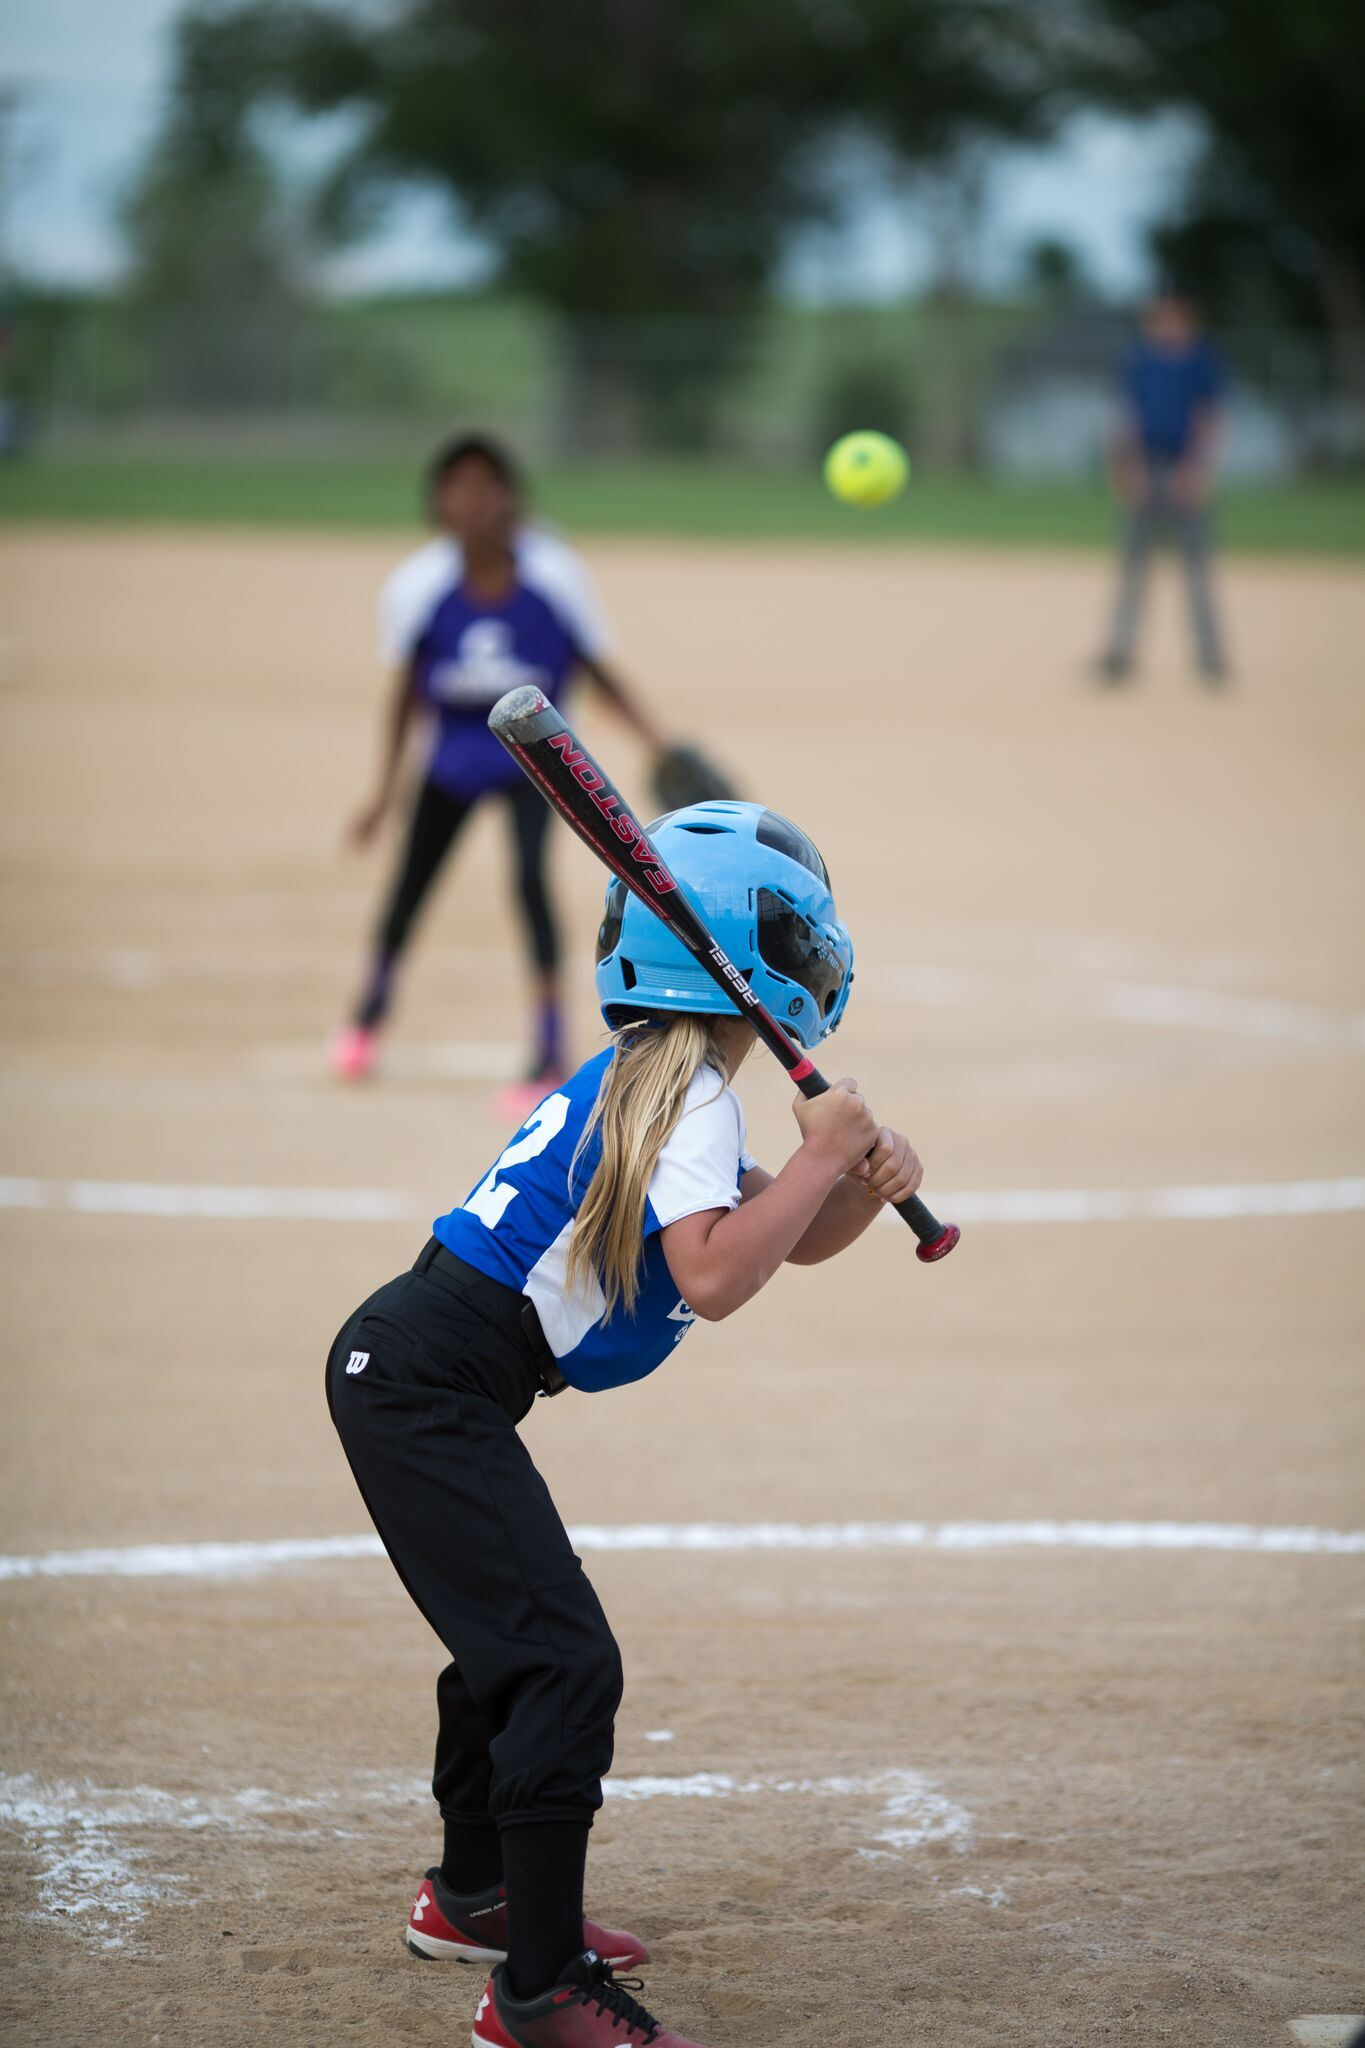 Young girl getting ready to swing the bat while receiving a pitch.